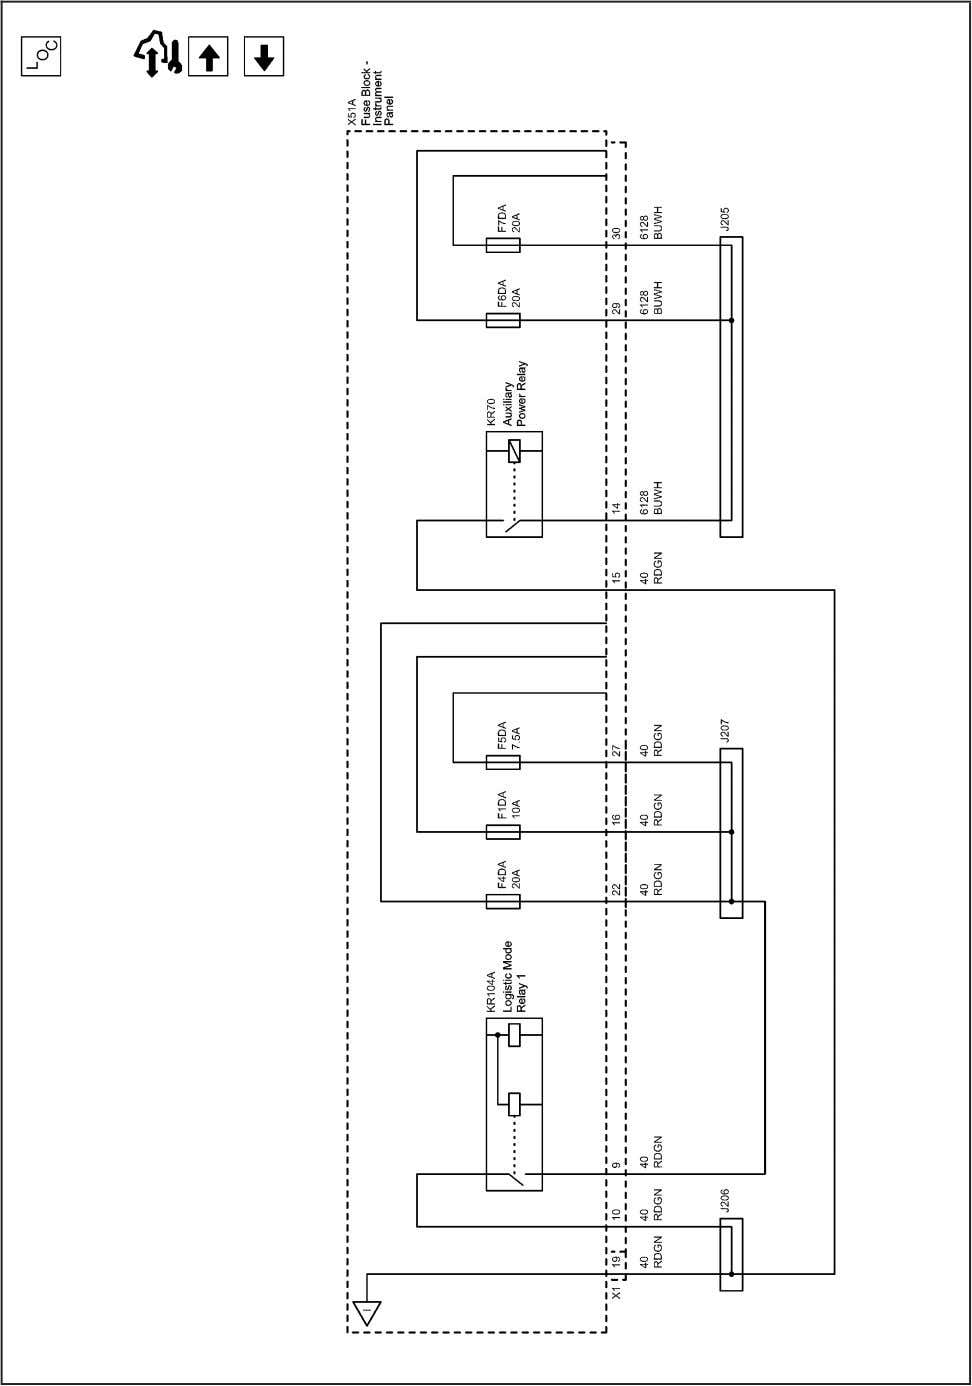 Systems and Power Management 11-55 2203081 Power Distribution Schematics (B+ Bus IEC (2 of 3)) 2010